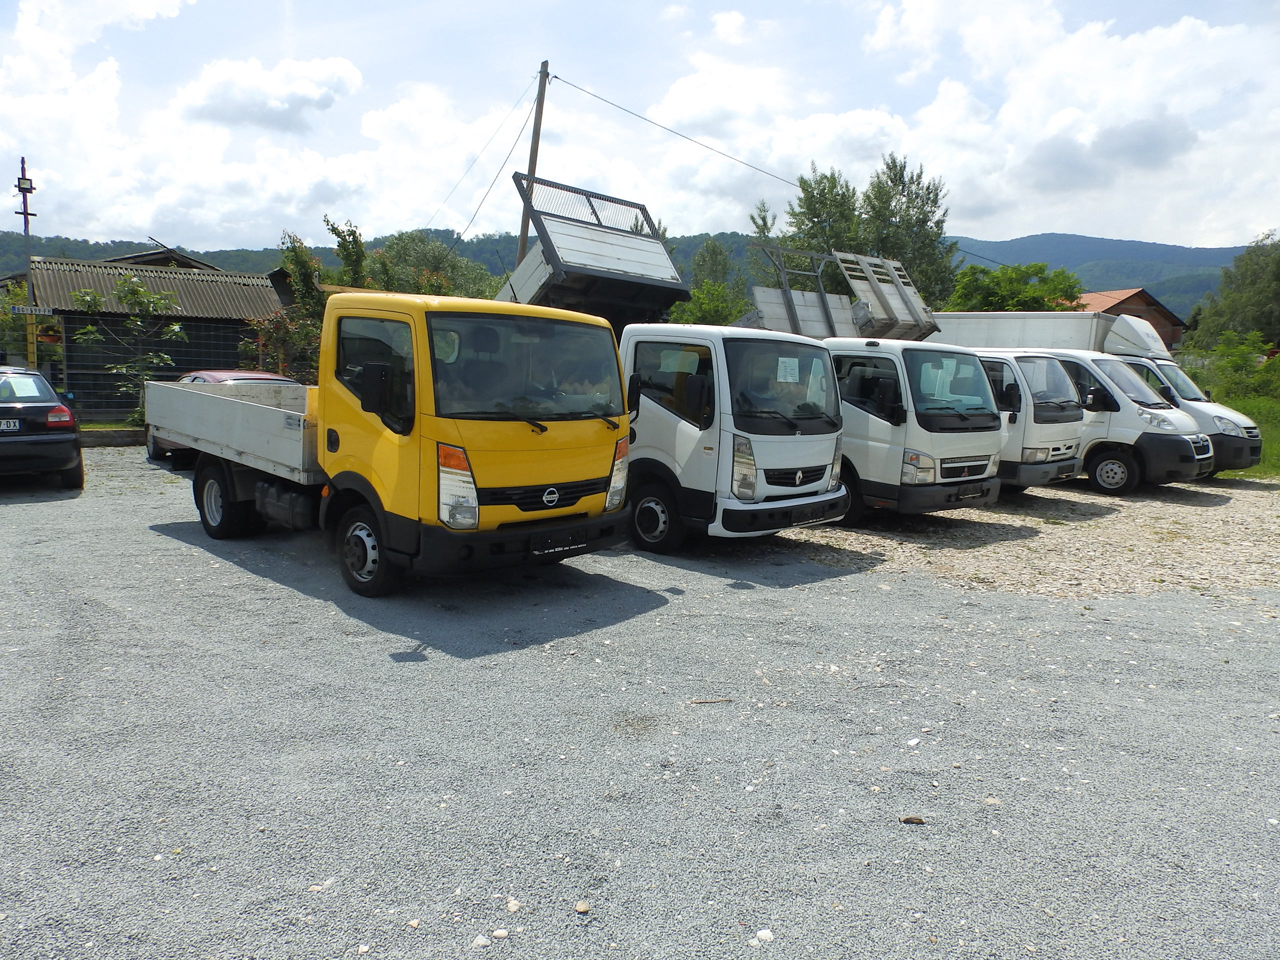 SERVICE TOWING SERVICE AND CAR CENTER GORAN-KEBA Used car parts Loznica - Photo 4